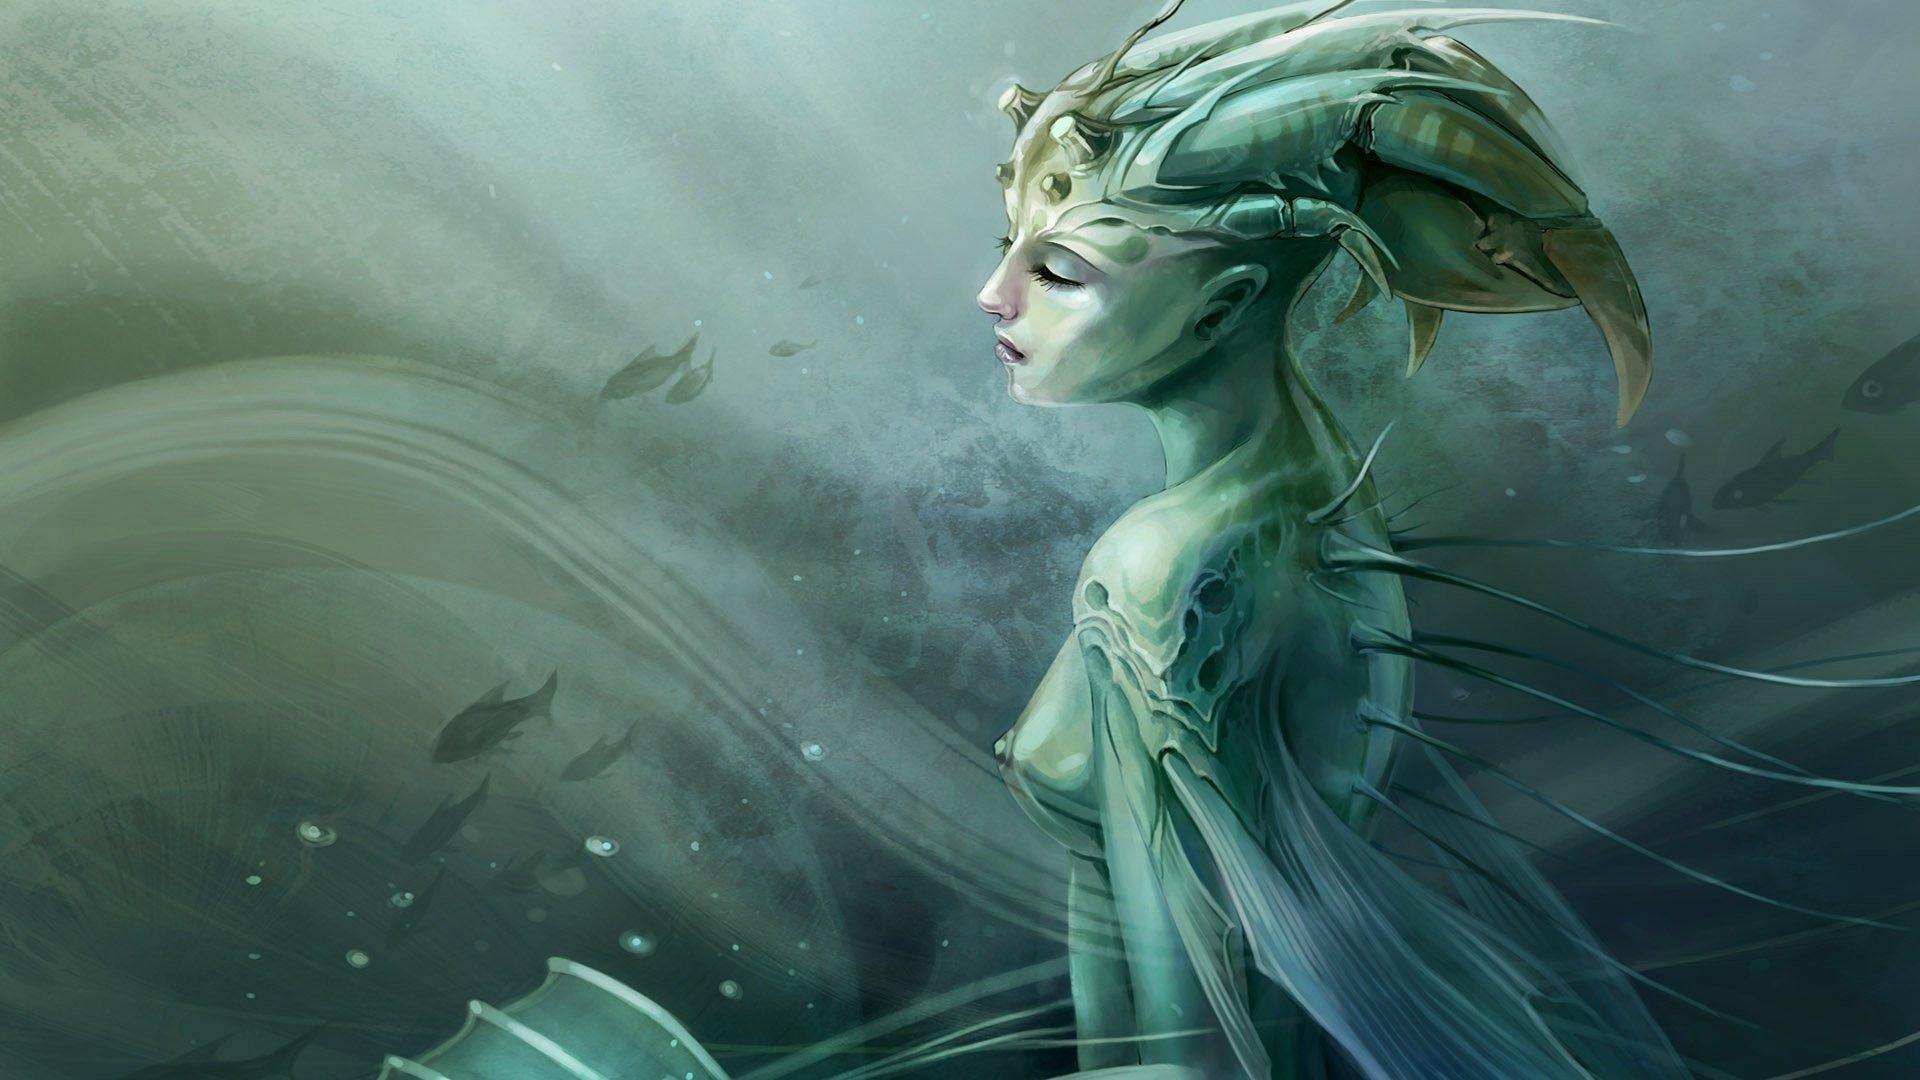 1920x1080 Wallpaper fantasy fairy dragon gnome knights princesses awesome 162